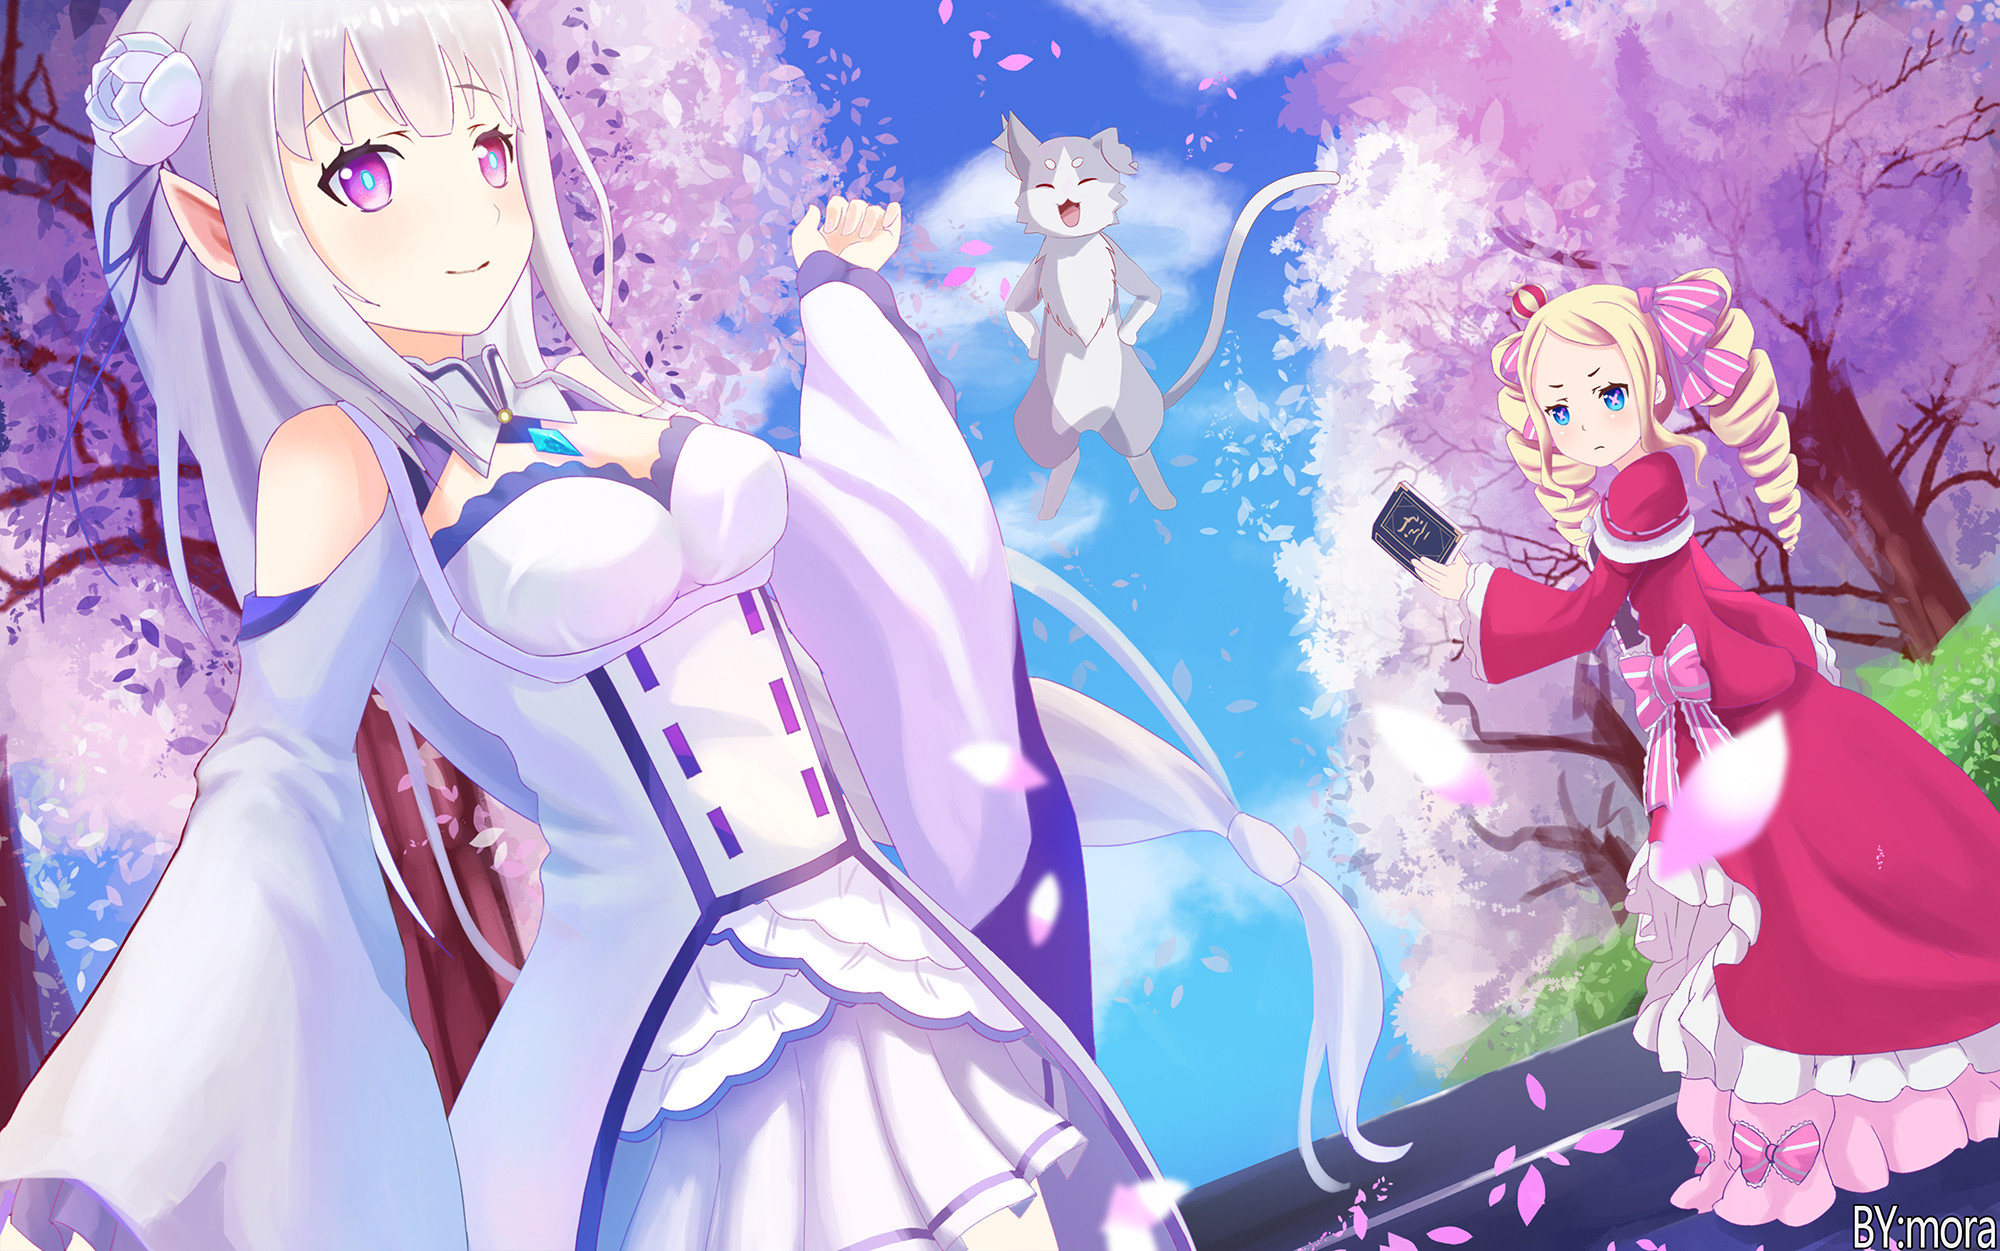 2000x1251 Anime - Re:ZERO -Starting Life in Another World- Emilia (Re: